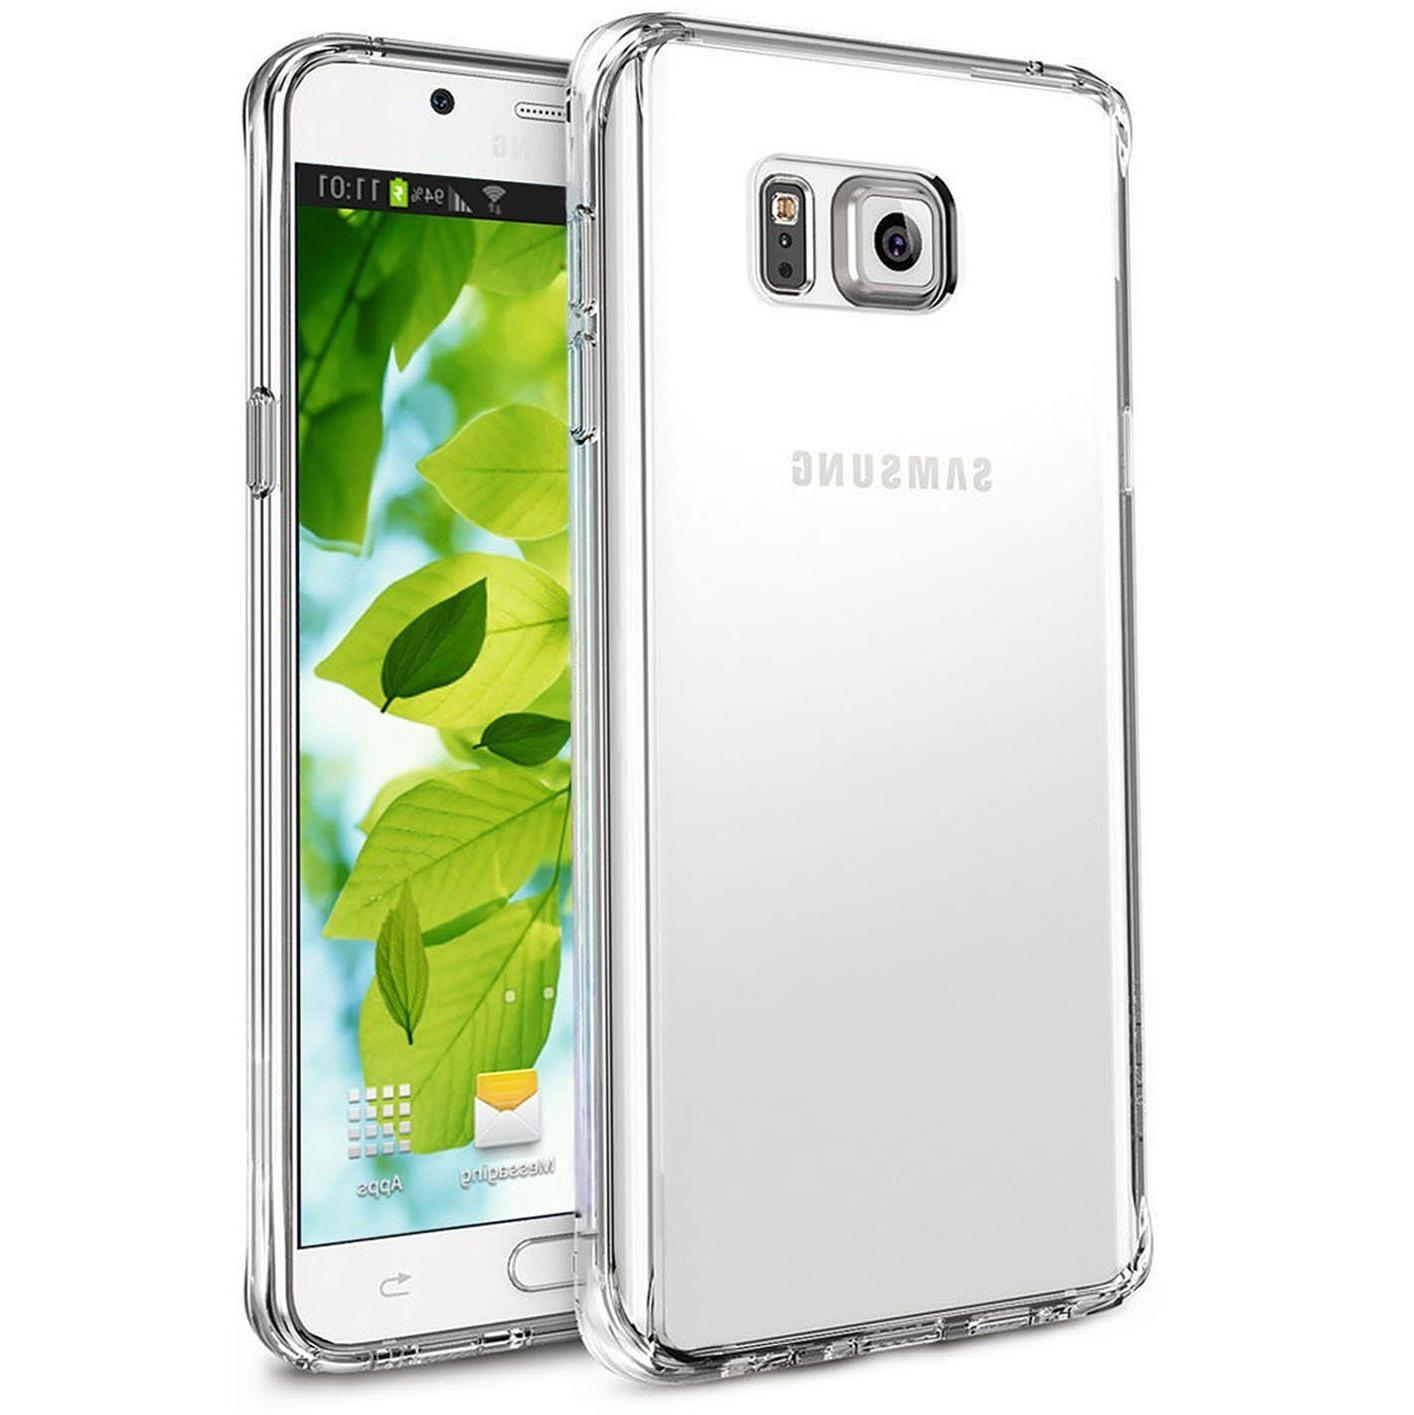 Clear Phone Case For Galaxy Note 10 9 8 4 S7 S8 S9 S10e Edge Case